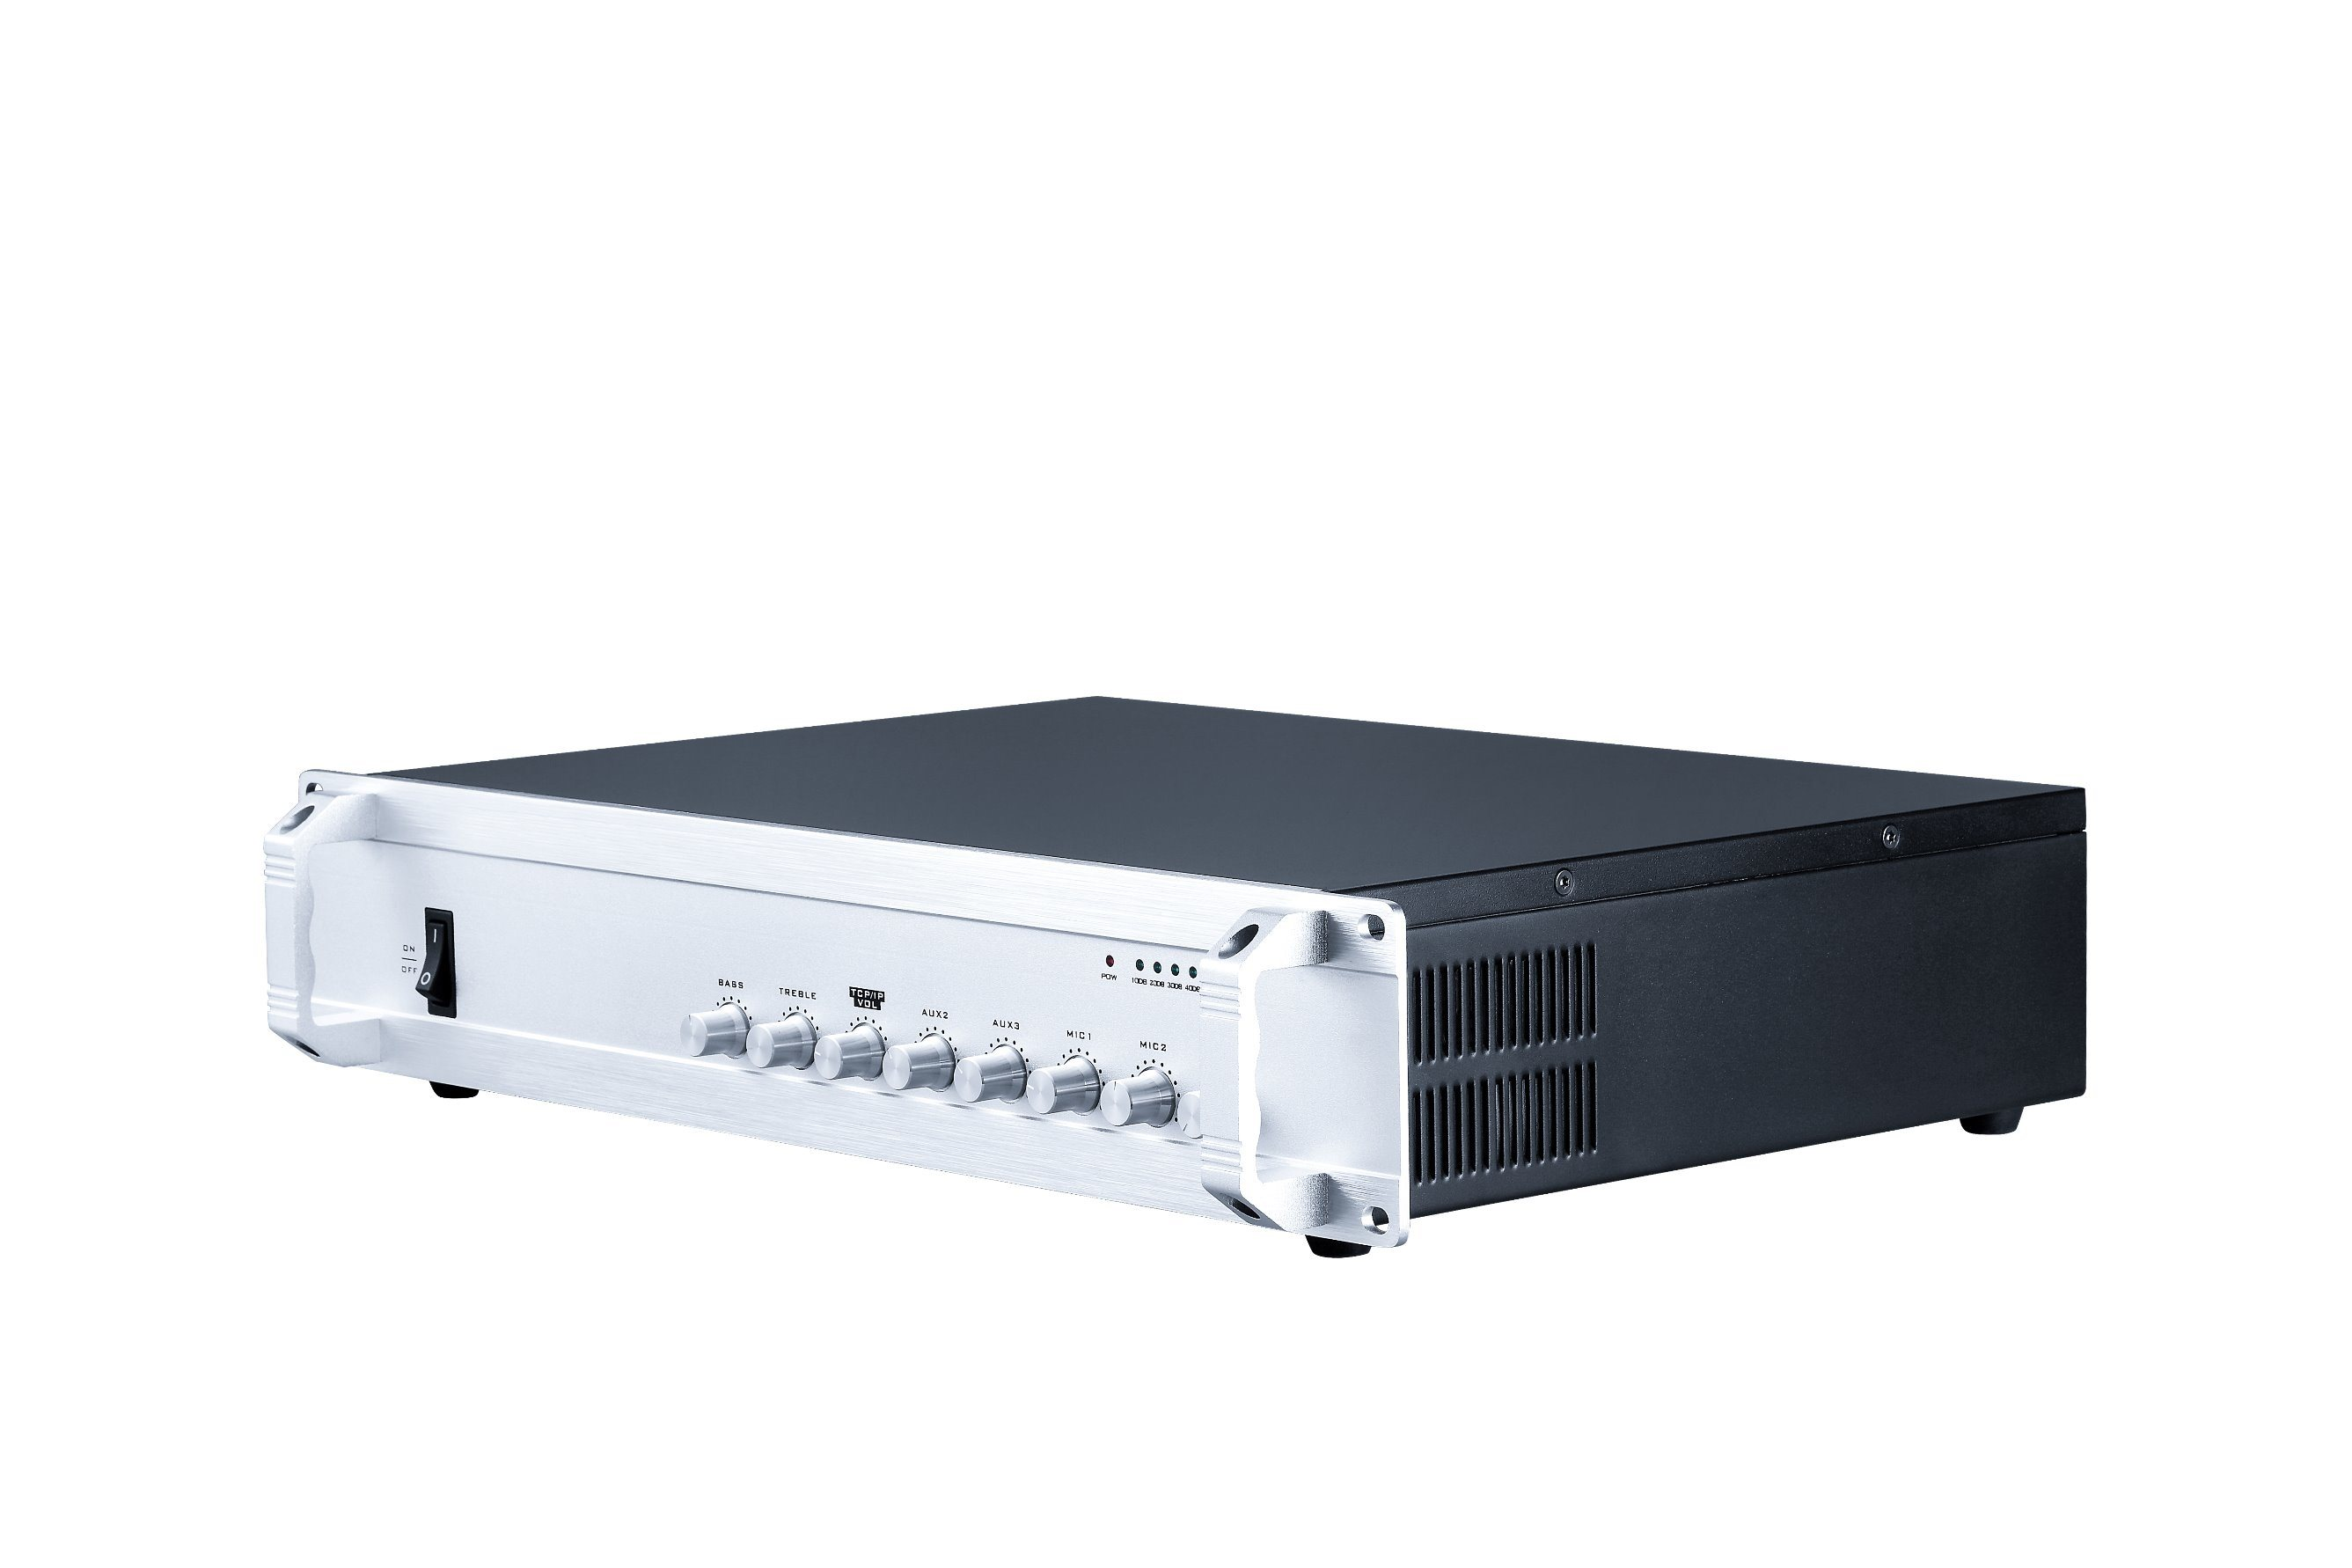 IP Network Mixer Amplifier in Rack Se-5846, Se-5856, Se-5866